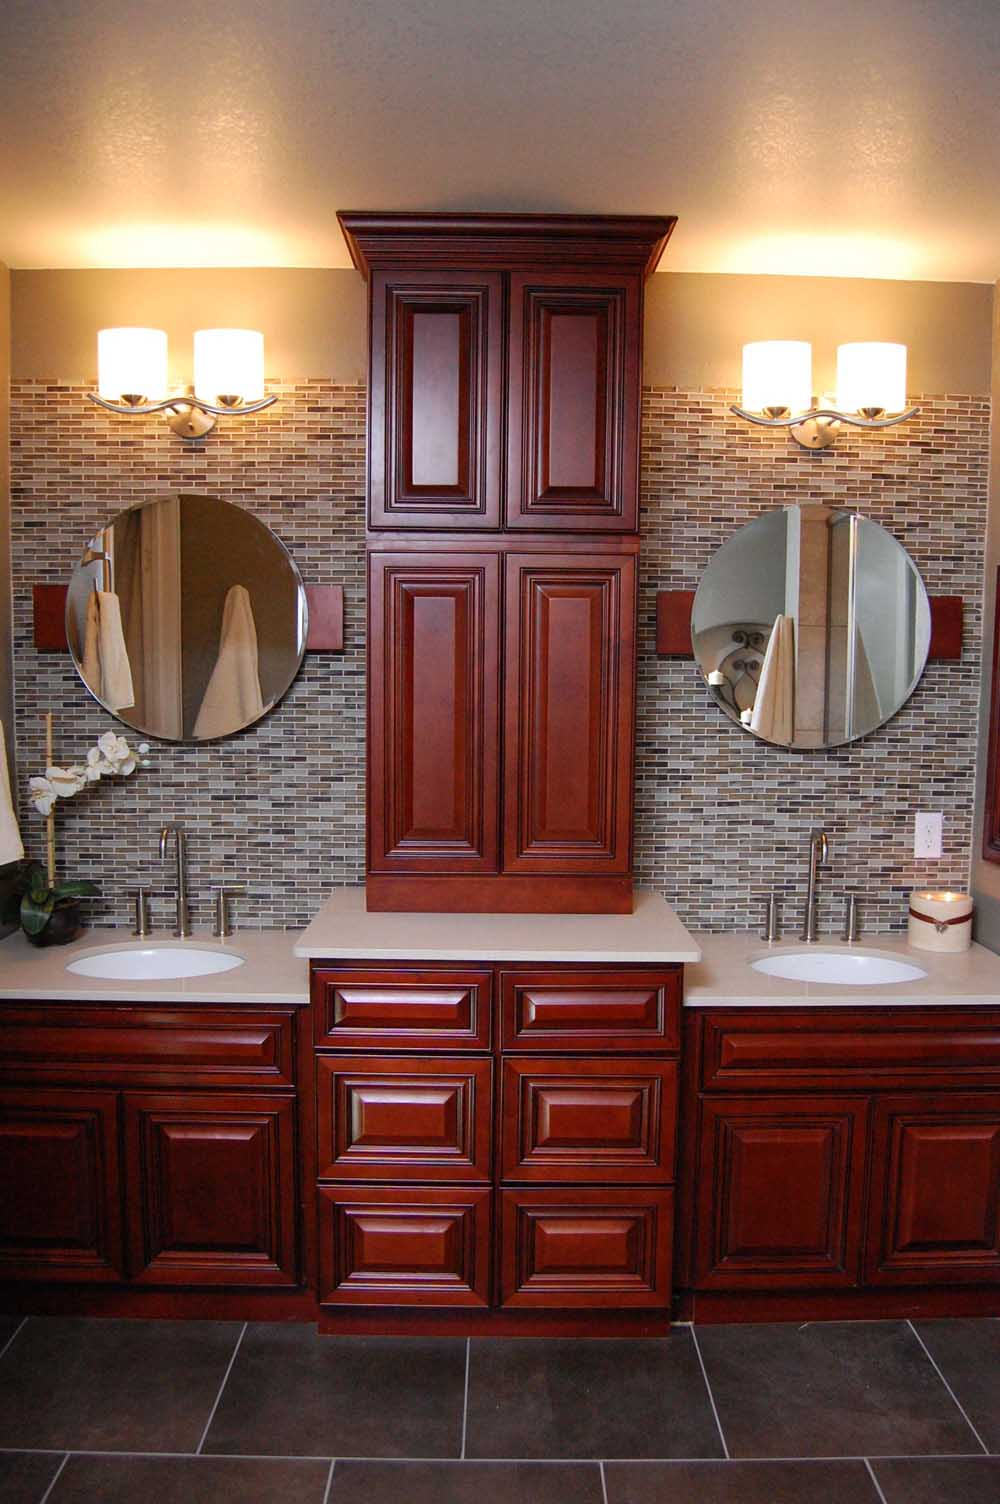 Bathroom Cabinets bathroom vanities for sale online - wholesale diy vanities | rta